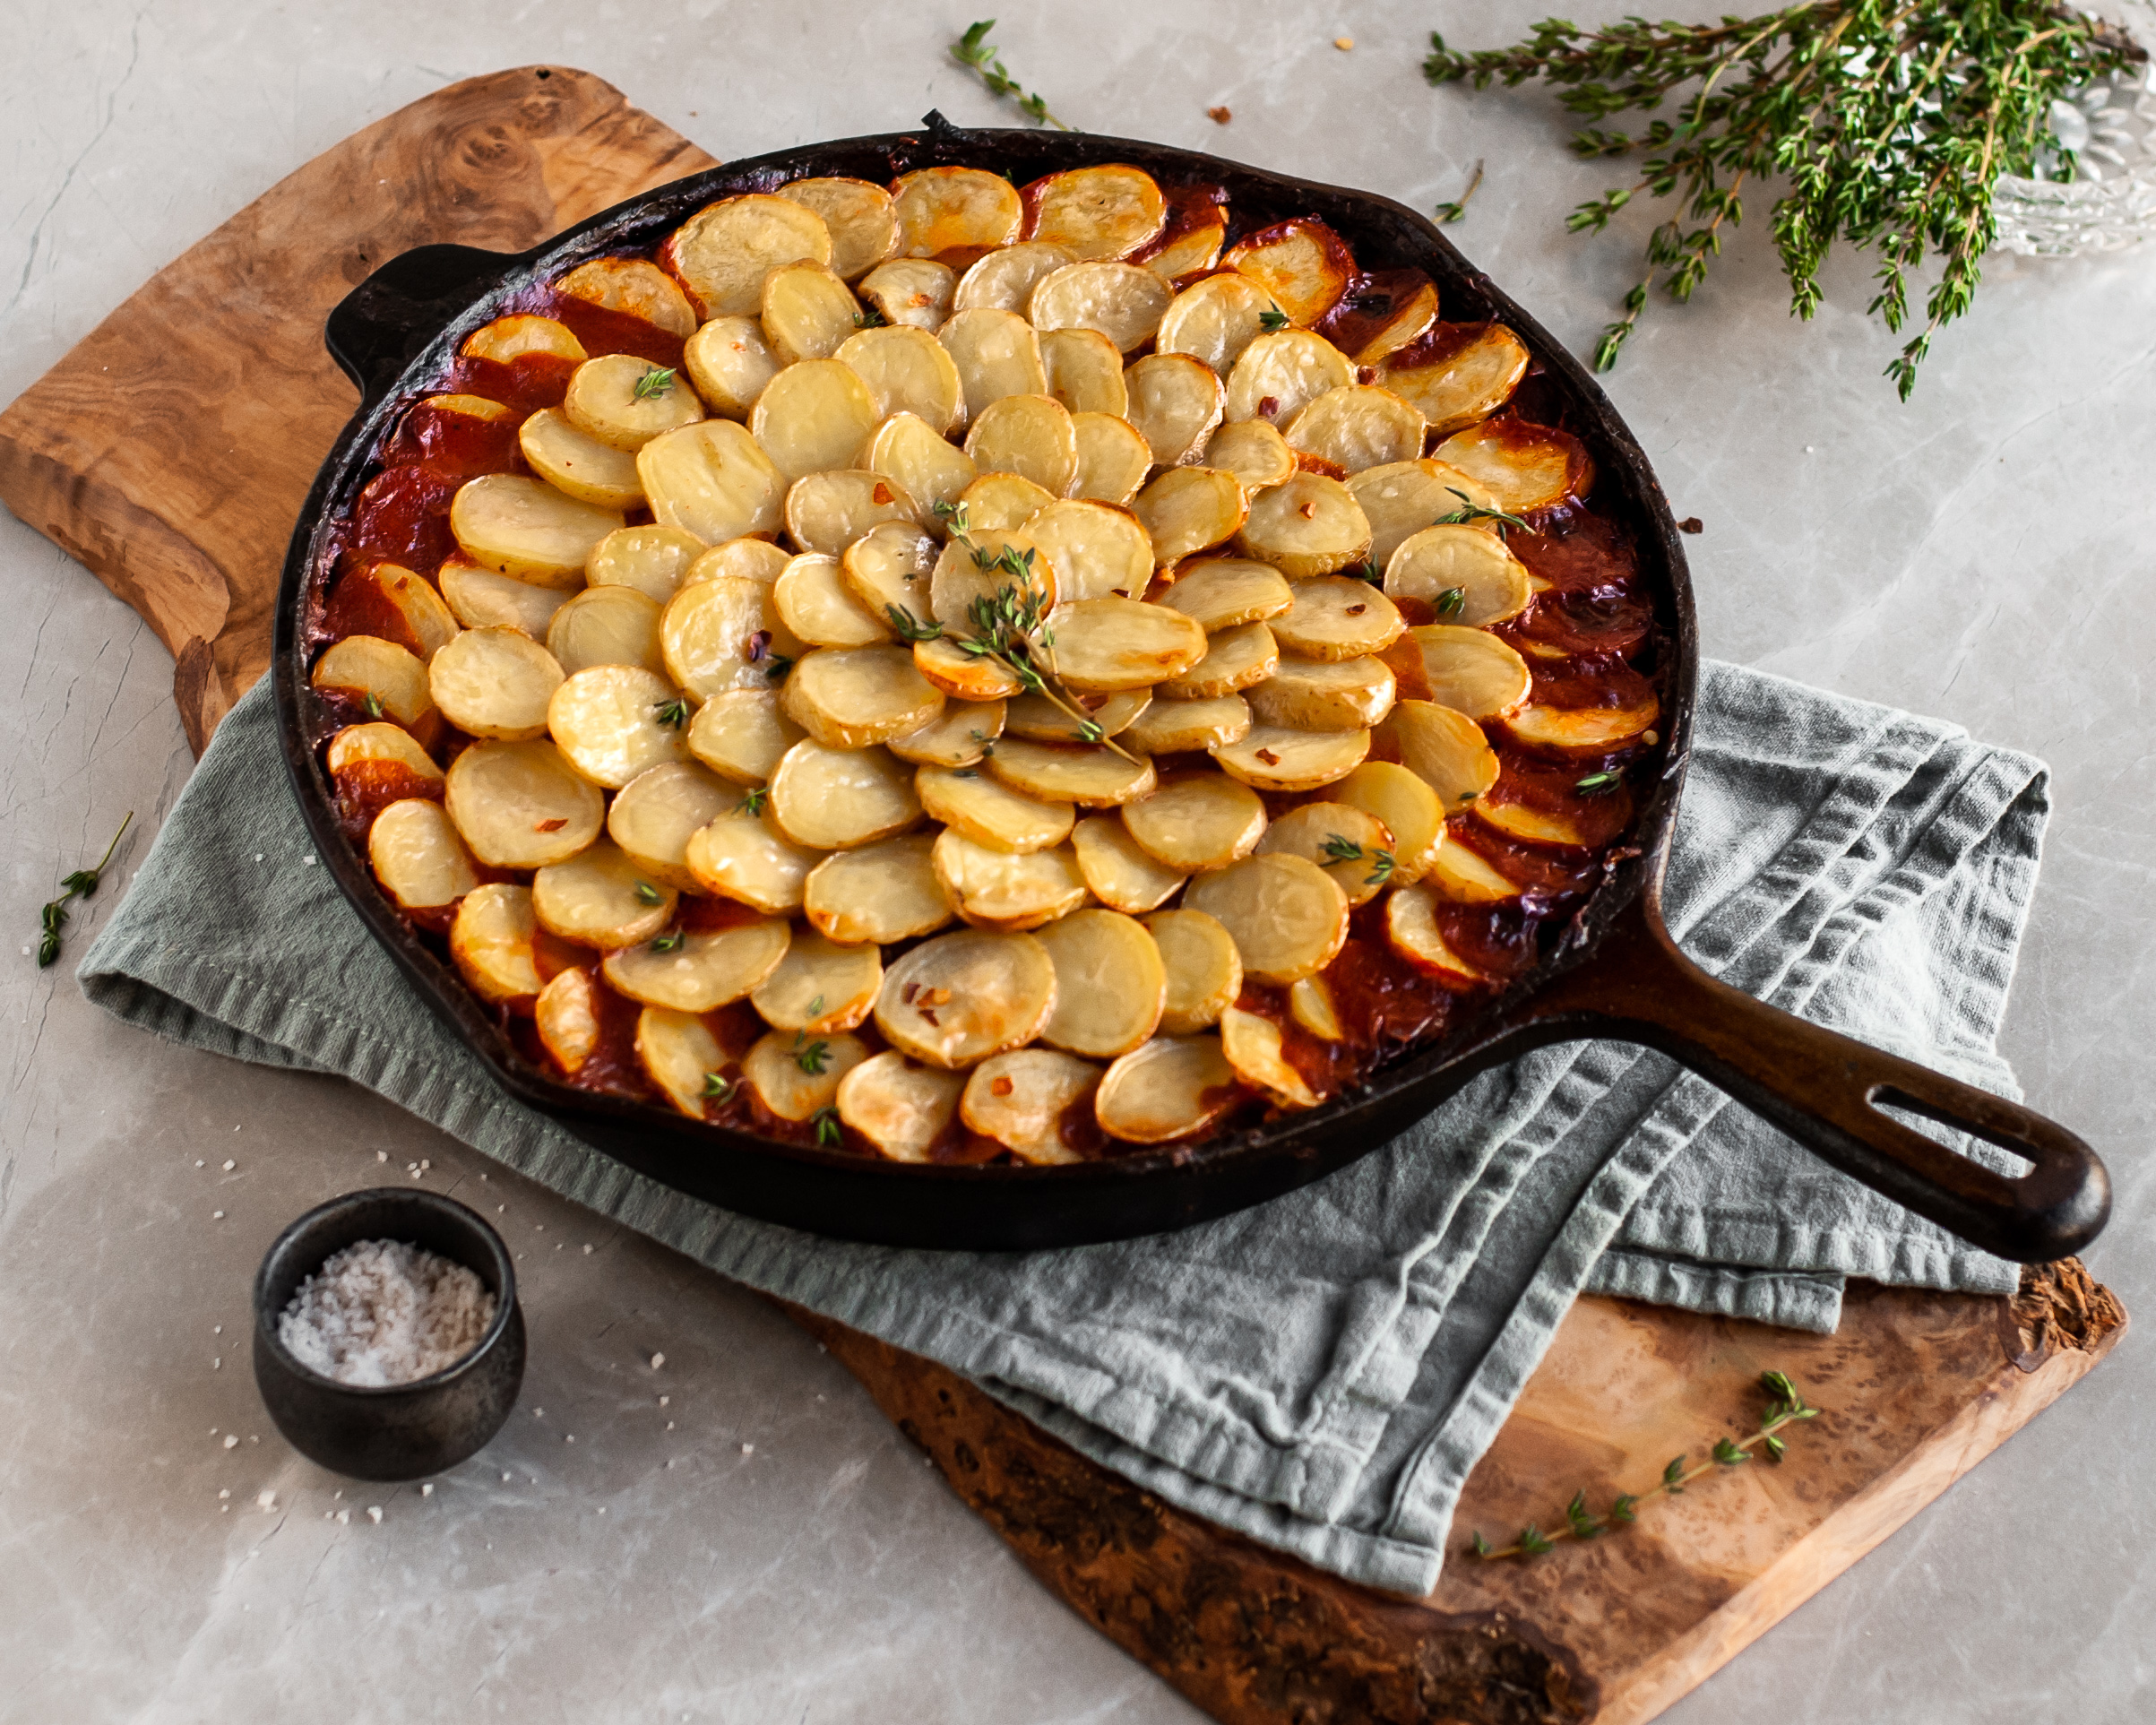 Vegan Savory Skillet Stew with Baby Potato Topping cooling on tea towel over wood slab